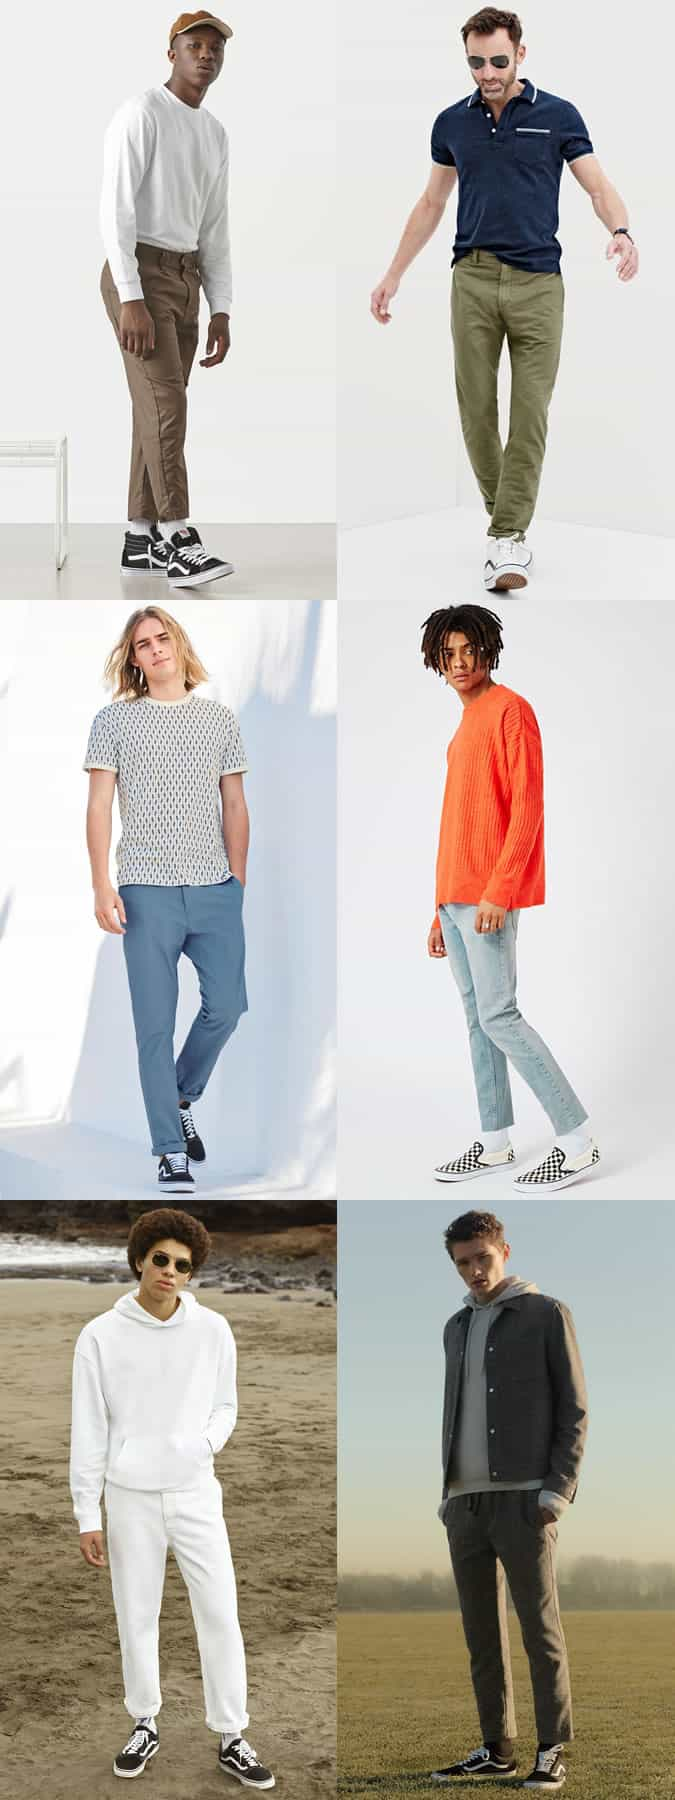 how to wear skate shoes and skate trainers like Vans